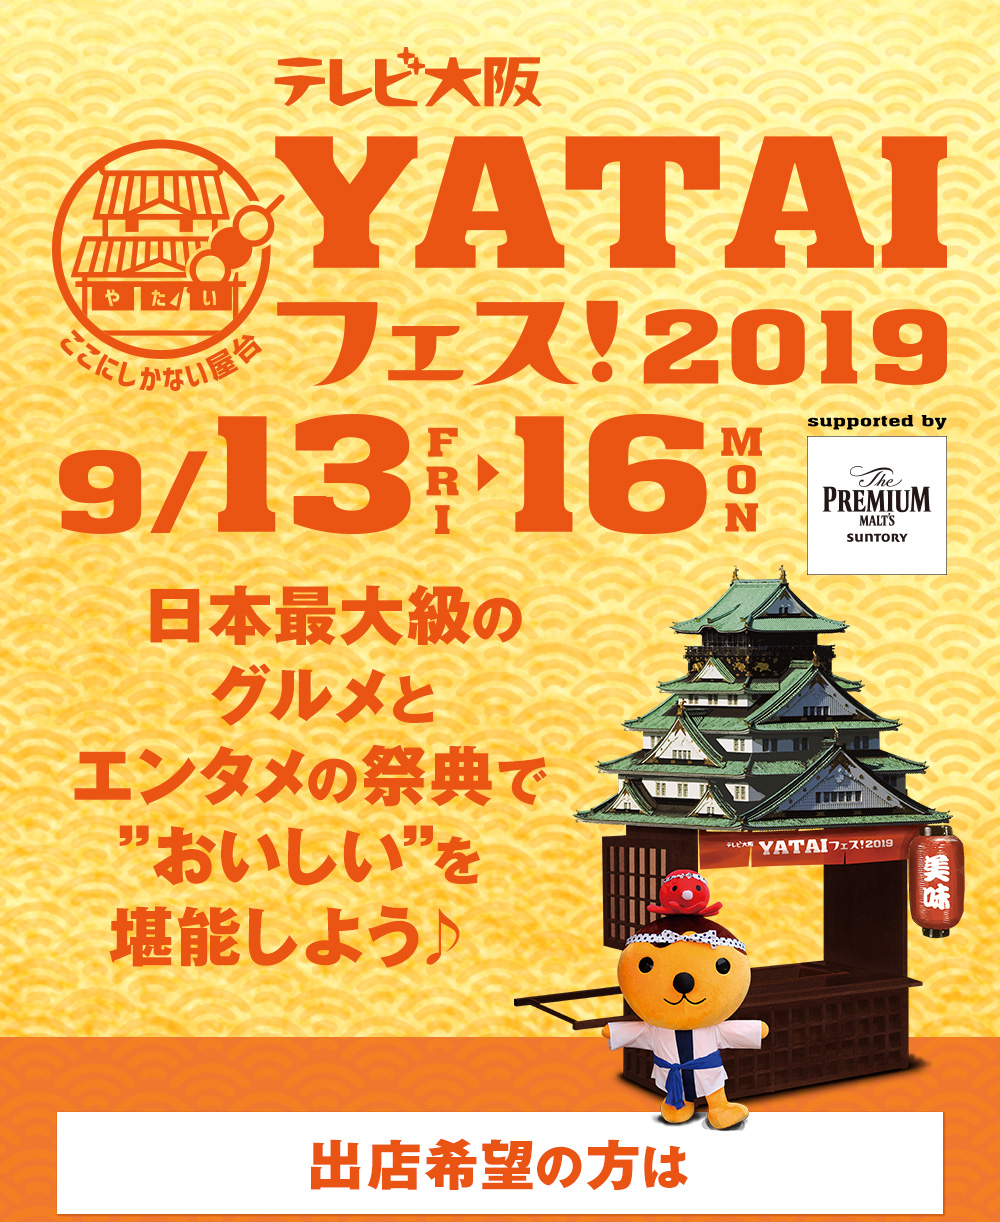 テレビ大阪YATAIフェス! 2019 supported by The PREMIUM MALT'S